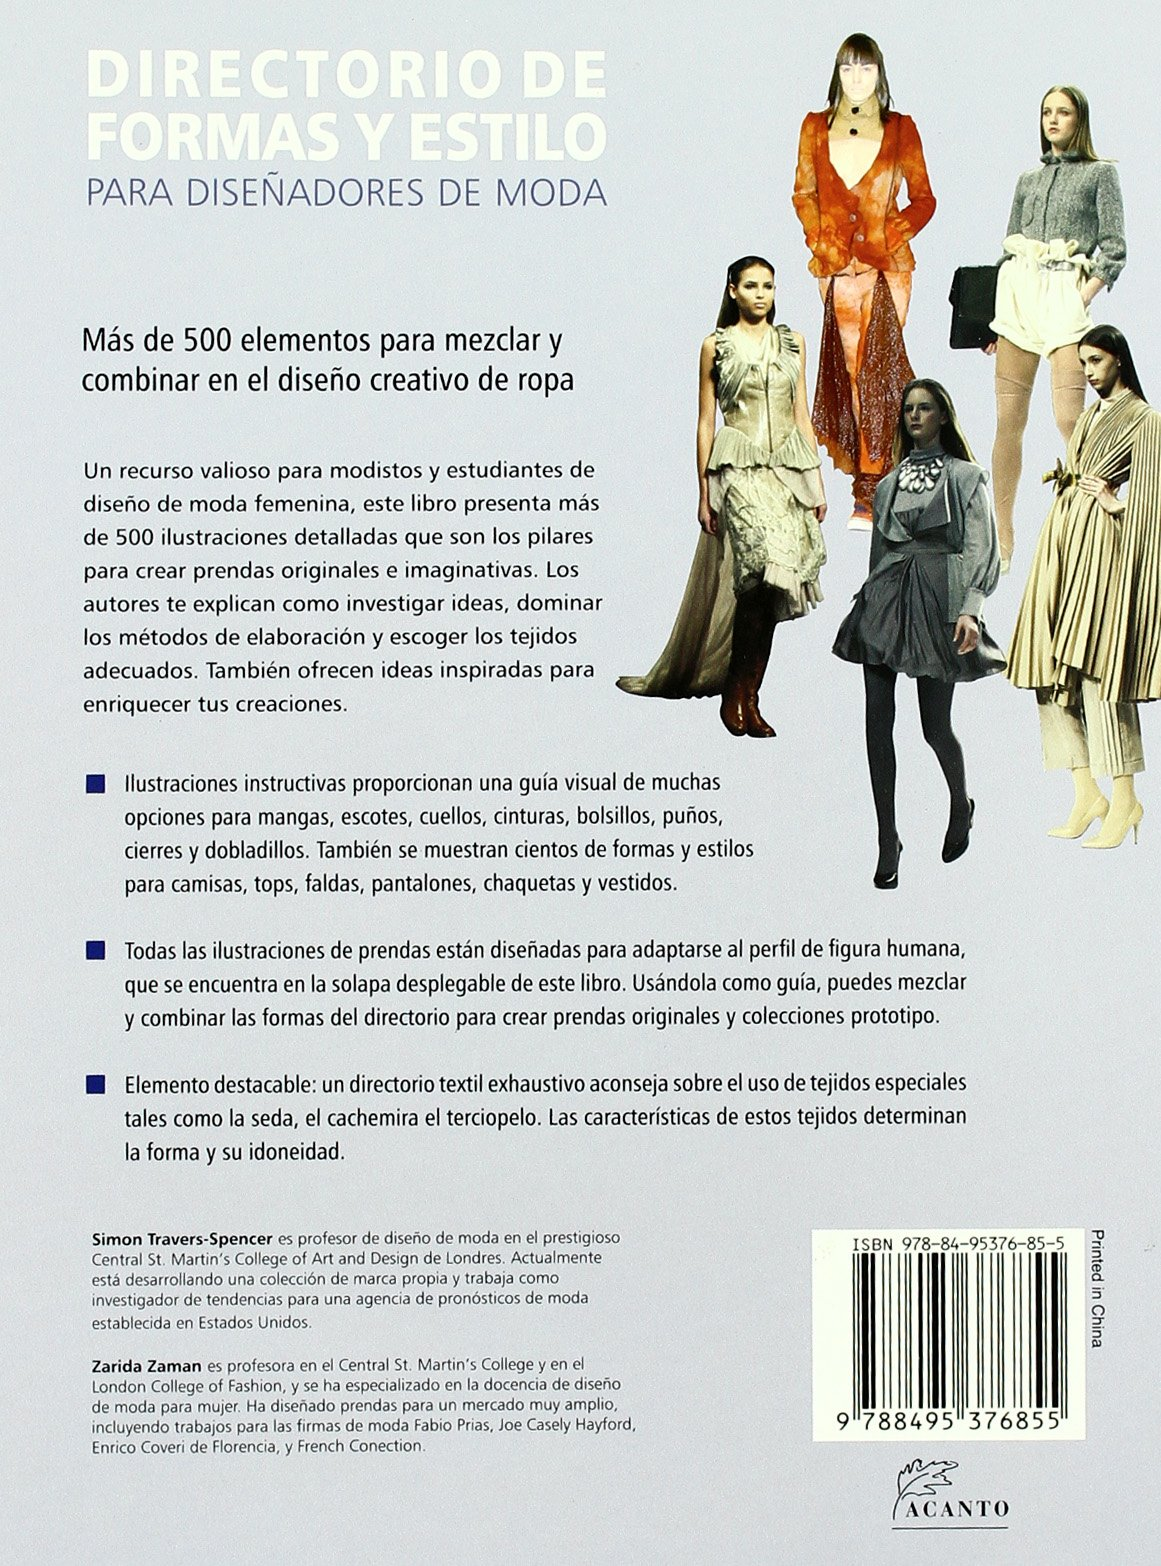 DIRECTORIO DE FORMAS Y ESTILO: Simon Travers-Spencer/Zarida Zaman: 9788495376855: Amazon.com: Books